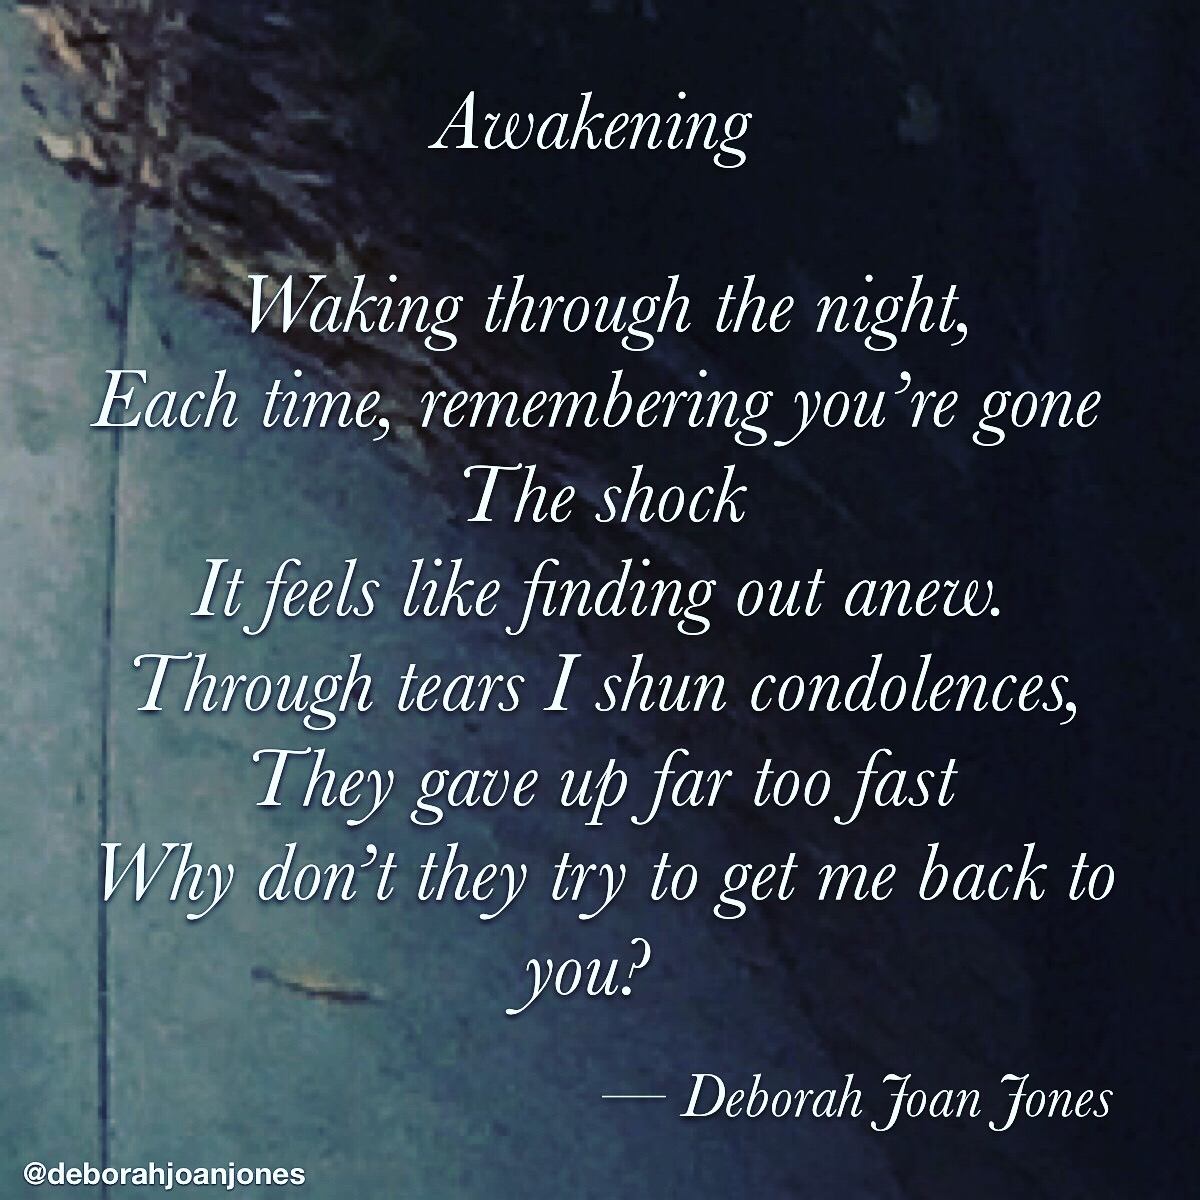 Awakening Deborah Joan Jones